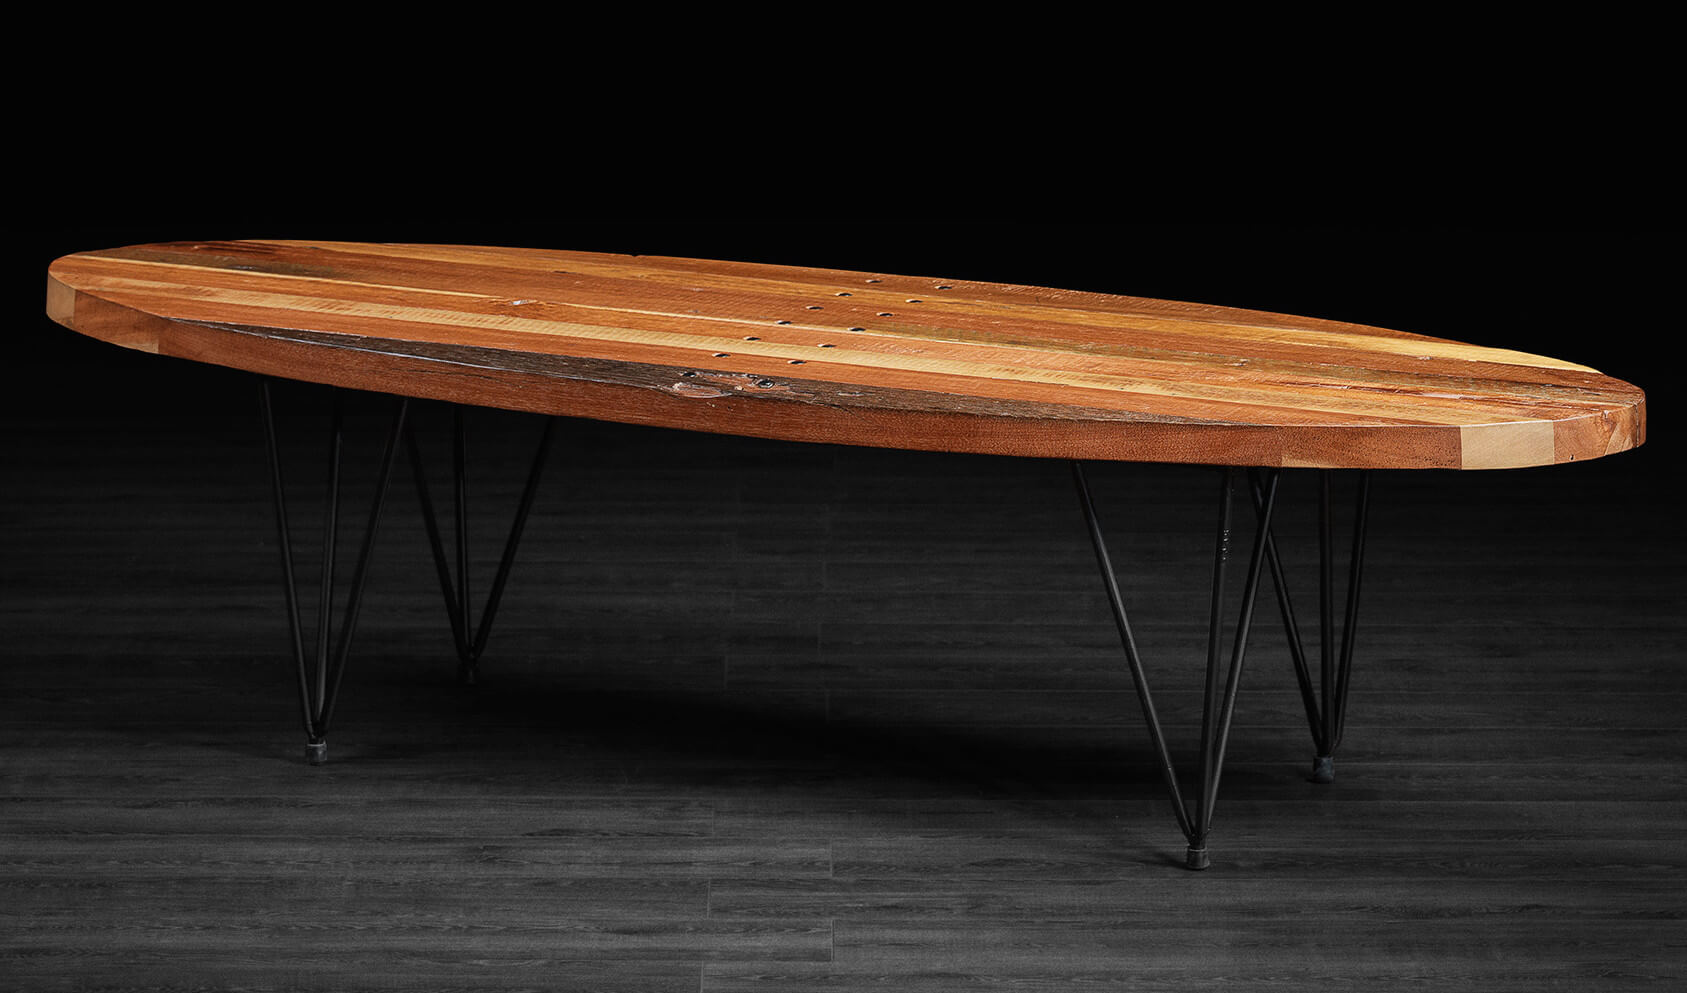 This coffee table is a striking, contemporary design incorporating a more surfboard-like surface over triangular wireframe legs. The mixture of rich natural wood and thin black metal makes for a bracing combination.